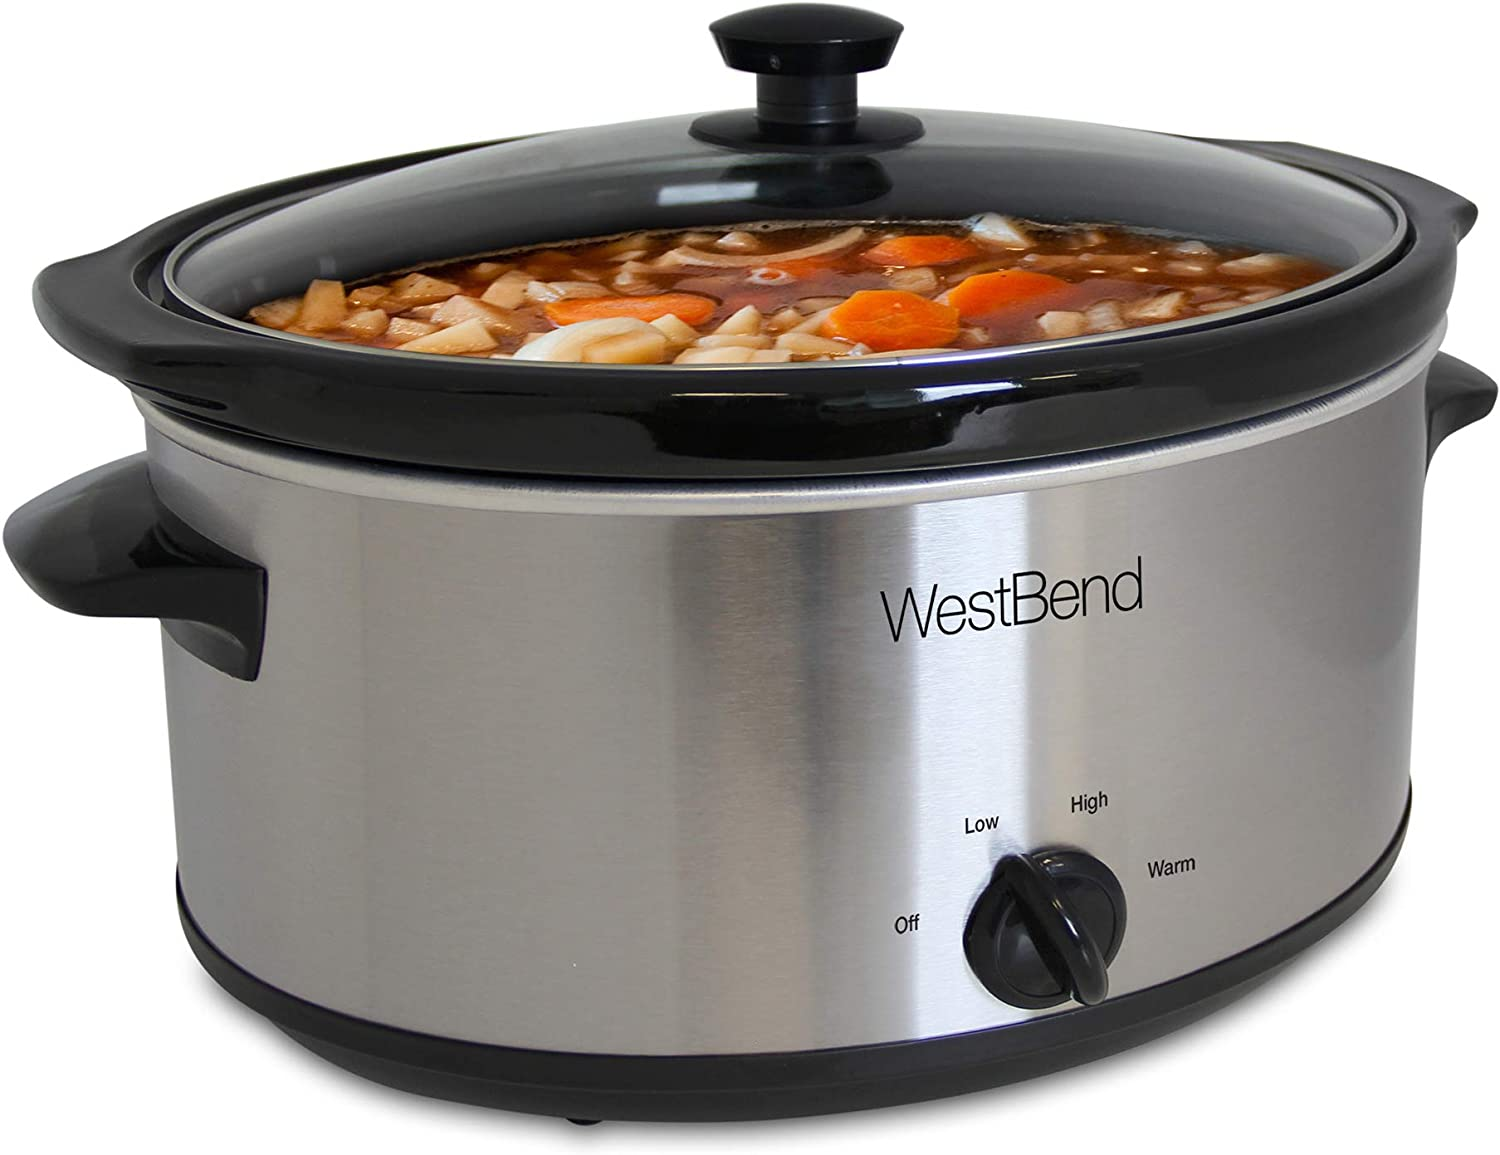 West Bend Manual Crockery Slow Cooker with Oval Ceramic Cooking Vessel and Glass Lid Certified, 6-Quart, Silver